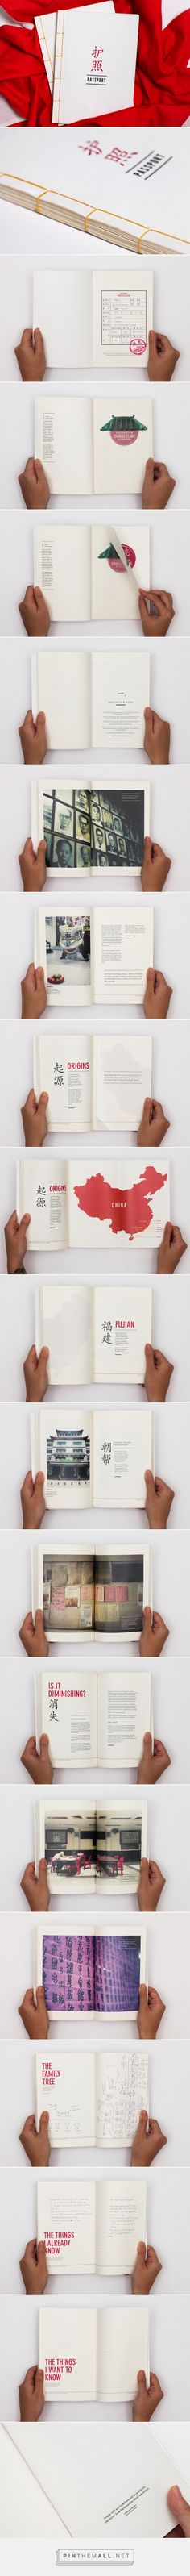 源 . 亮 : A Retrospect on Chinese Clans (The Book) by Serene Yap on Behance